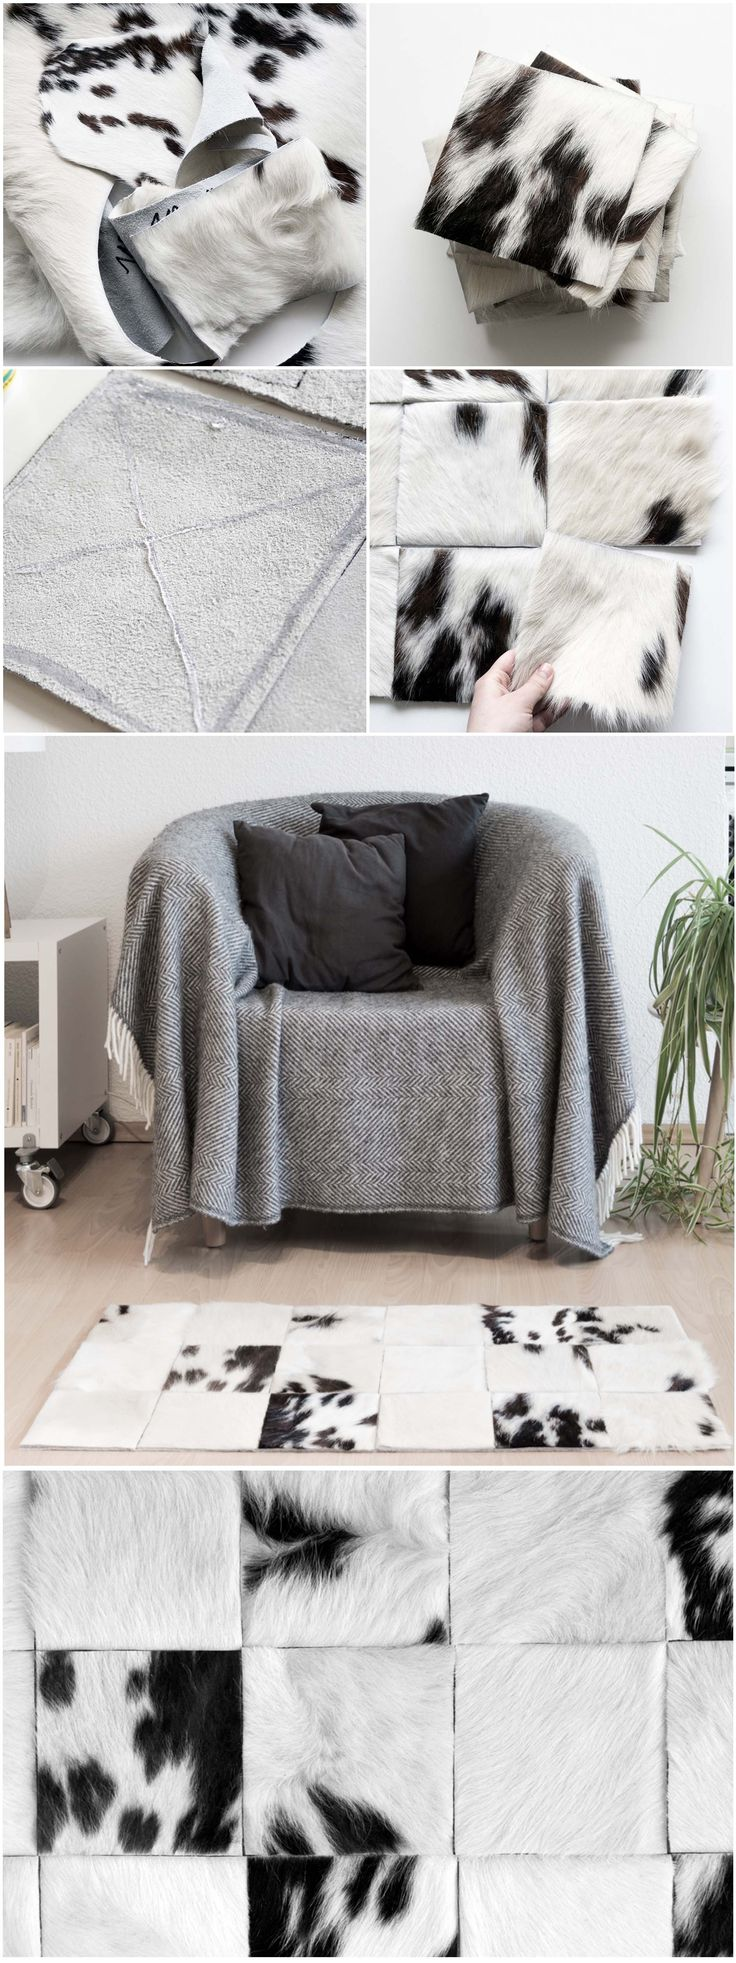 ... Brauner Teppich In Kuhfell Optik ~ 25 Best Ideas About Kuhfell On  Pinterest Dunkle Vorhänge Kuh ...